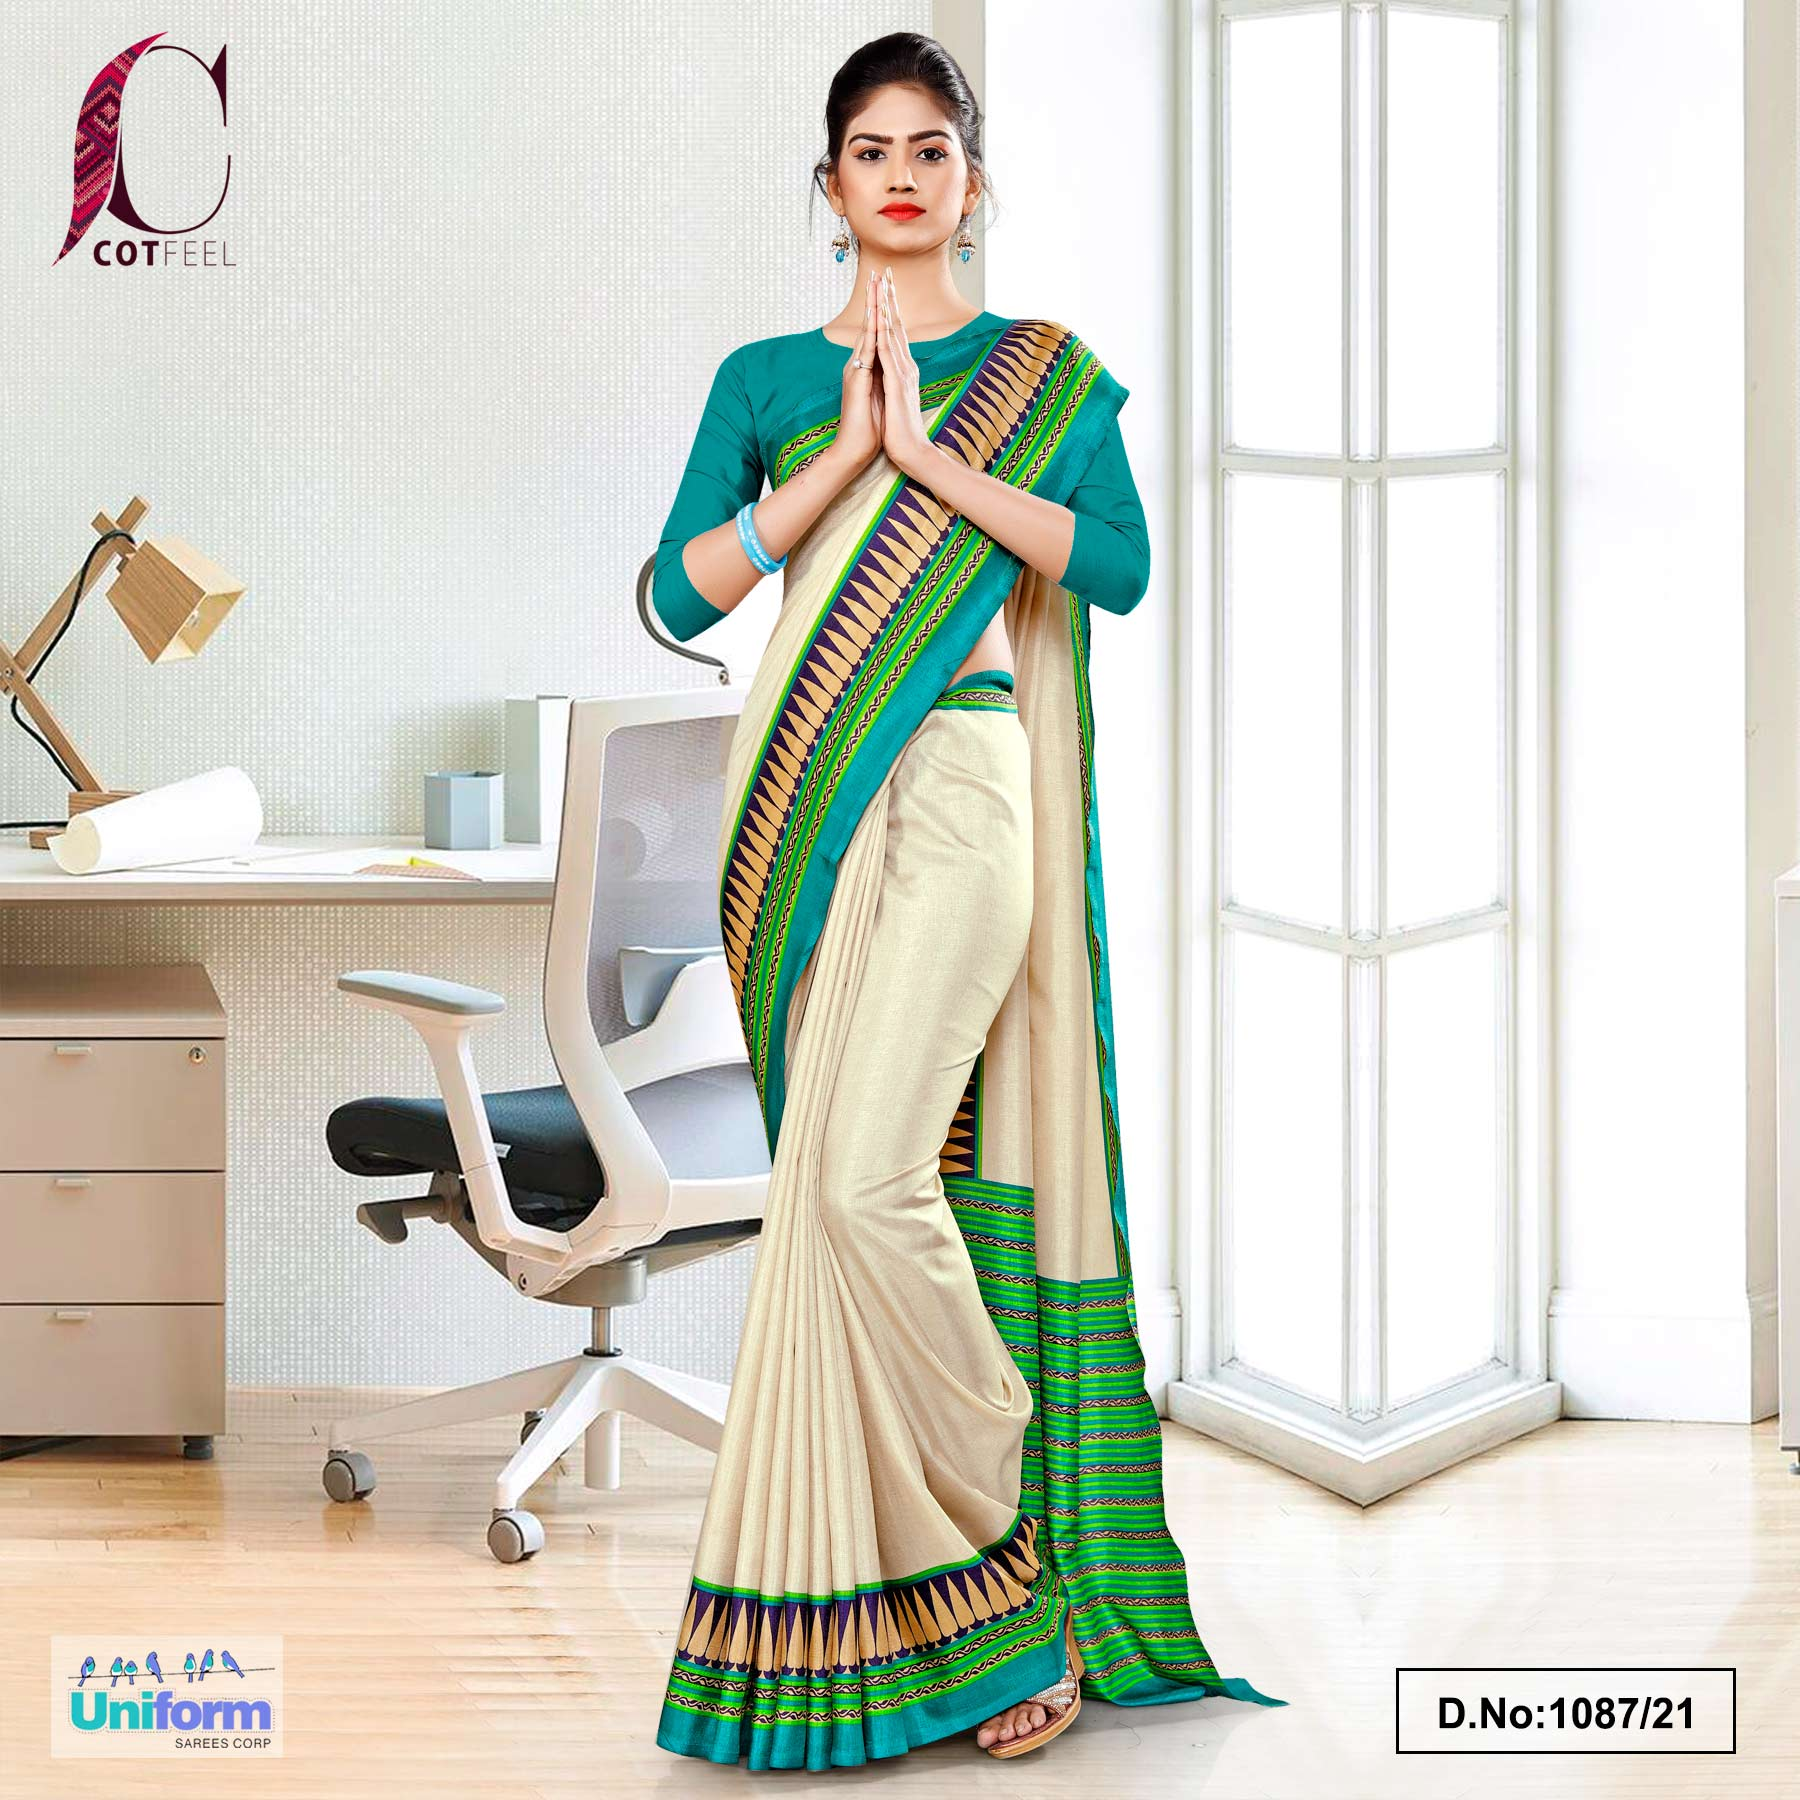 Cream Green Plain Gala Border Polycotton Cotfeel Saree for Annual Function Uniform Sarees